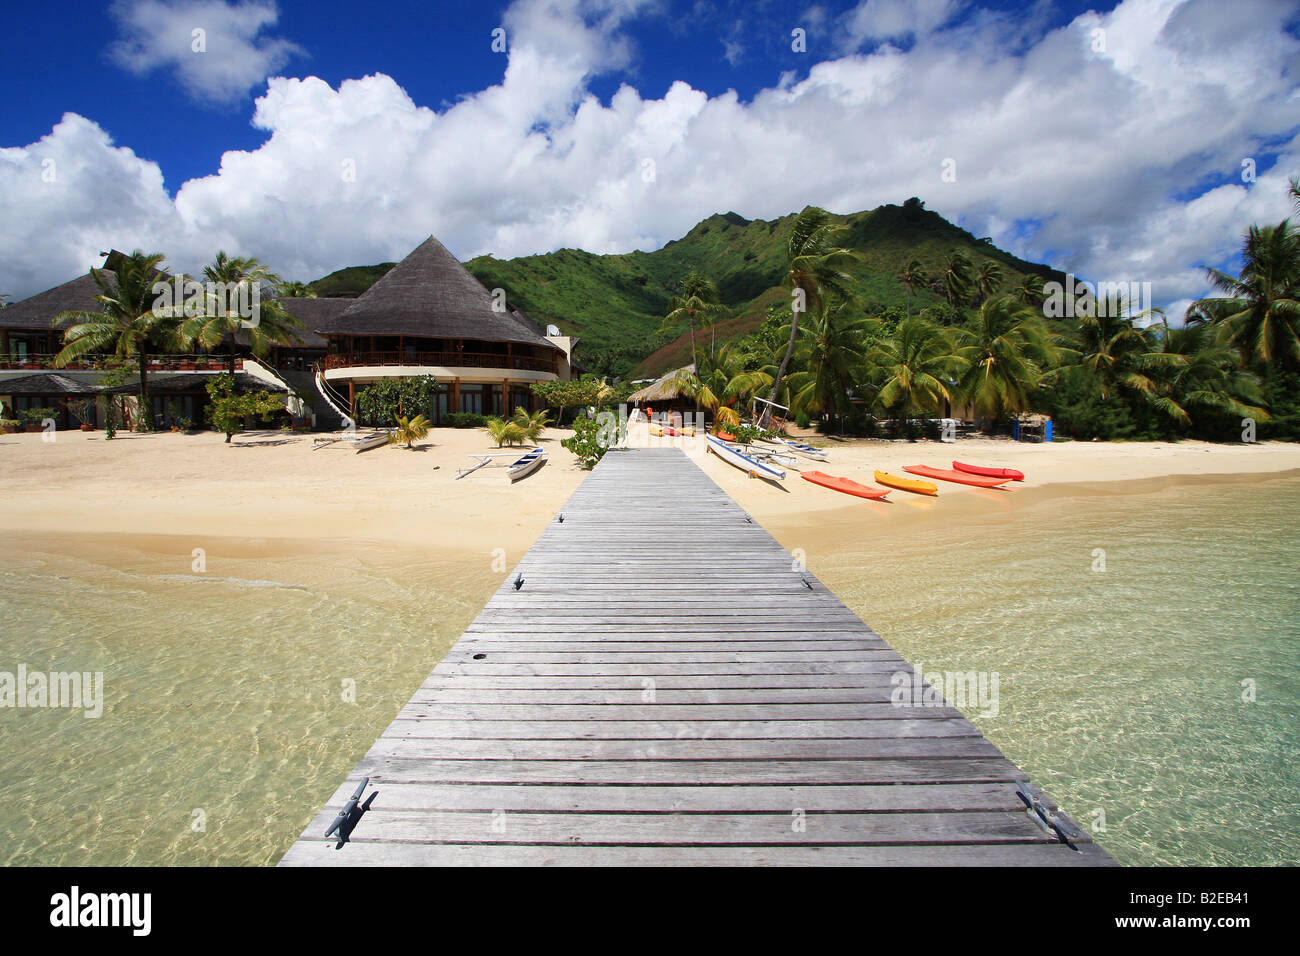 Jetty on beach, Tuamotu Archipelago, French Polynesia, Polynesia, Pacific Island - Stock Image